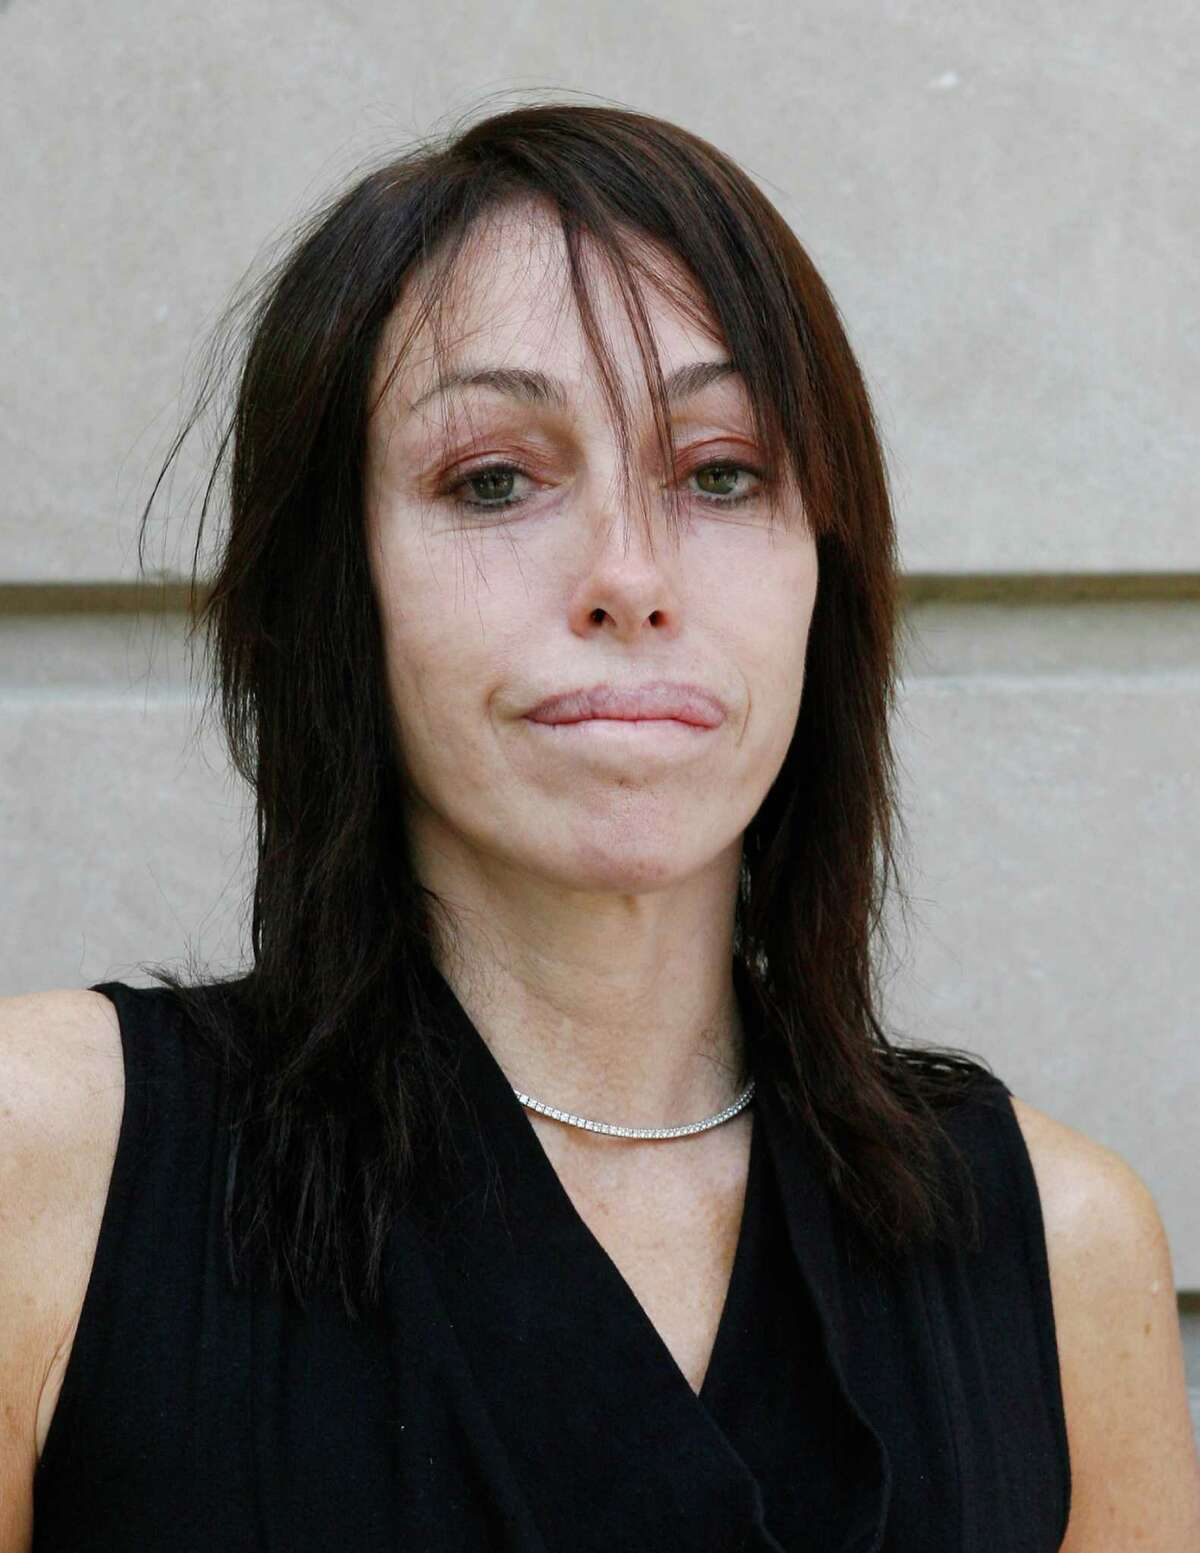 NEW YORK - JUNE 17: Heidi Fleiss, who aligned herself with PETA, arrives at PetSmart's annual meeting at The Ritz-Carlton New York on June 17, 2009 in New York City. (Photo by Mark Von Holden/WireImage)